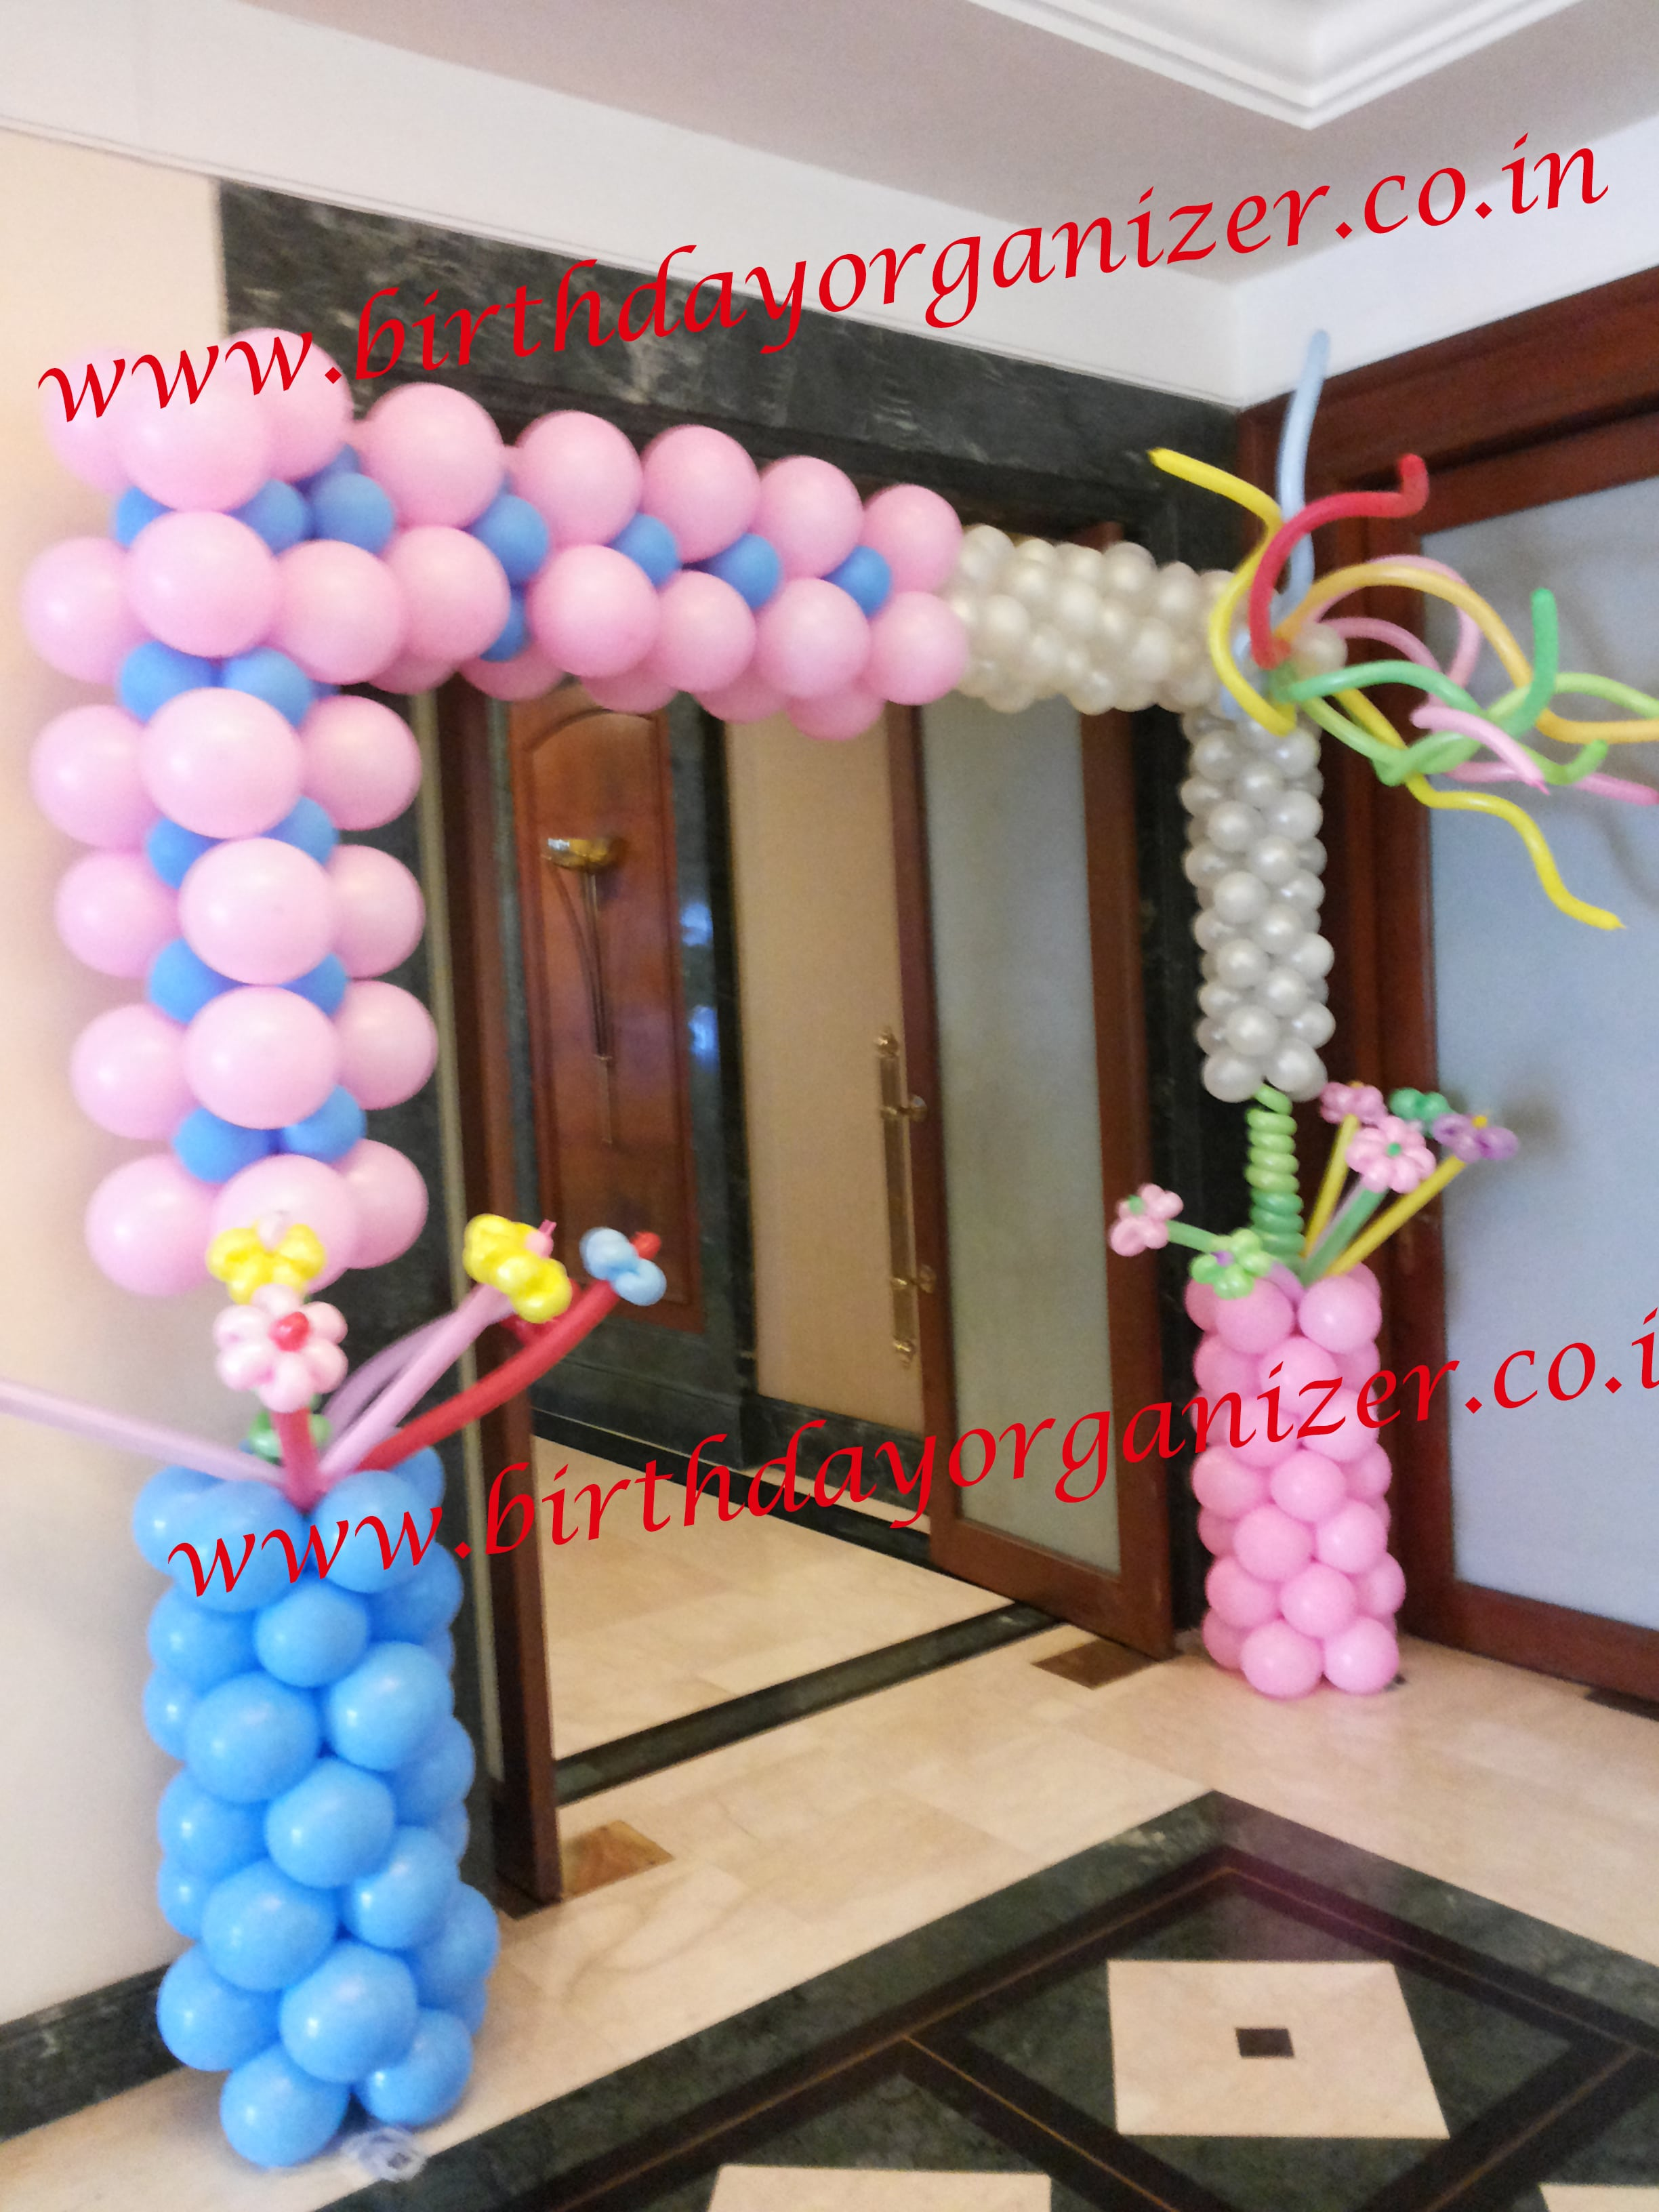 Baby shower party planner in noida, Baby shower party planner in delhi, Baby shower party planner in ncr